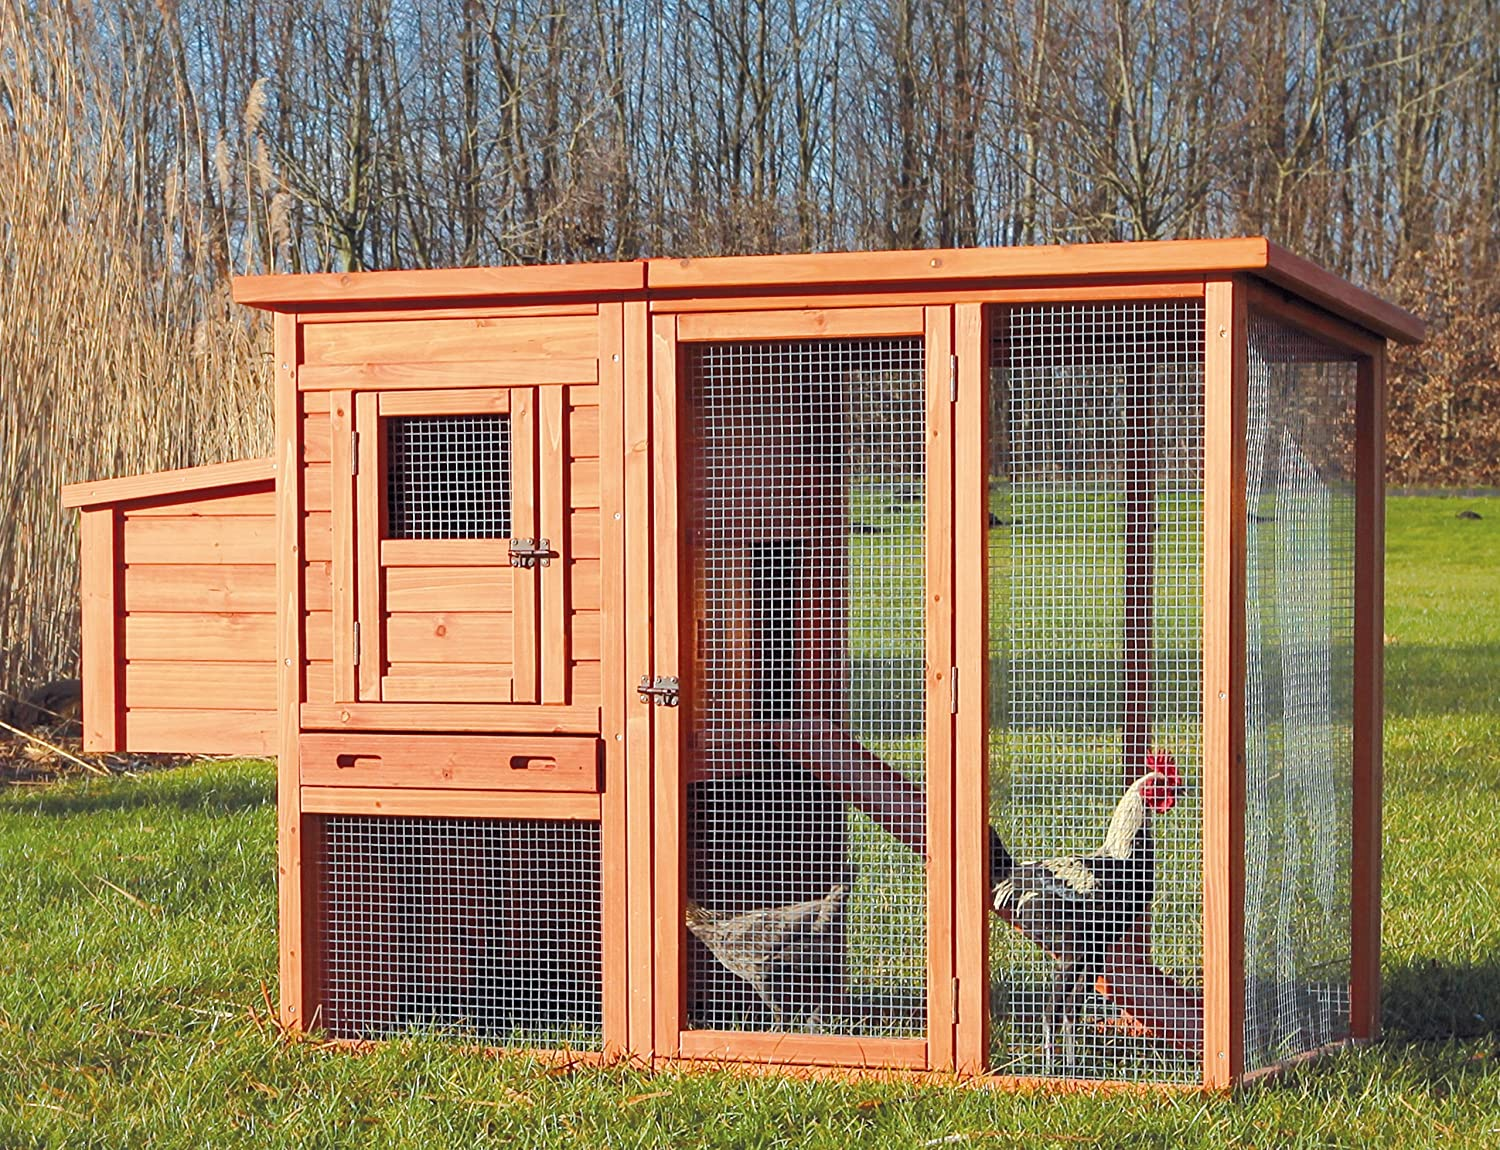 trixiemodel!!! @@@ 1 Amazon.com : TRIXIE Pet Products Chicken Coop with Outdoor Run, 66.75 x  30.25 x 41.25 inches : Patio, Lawn & Garden